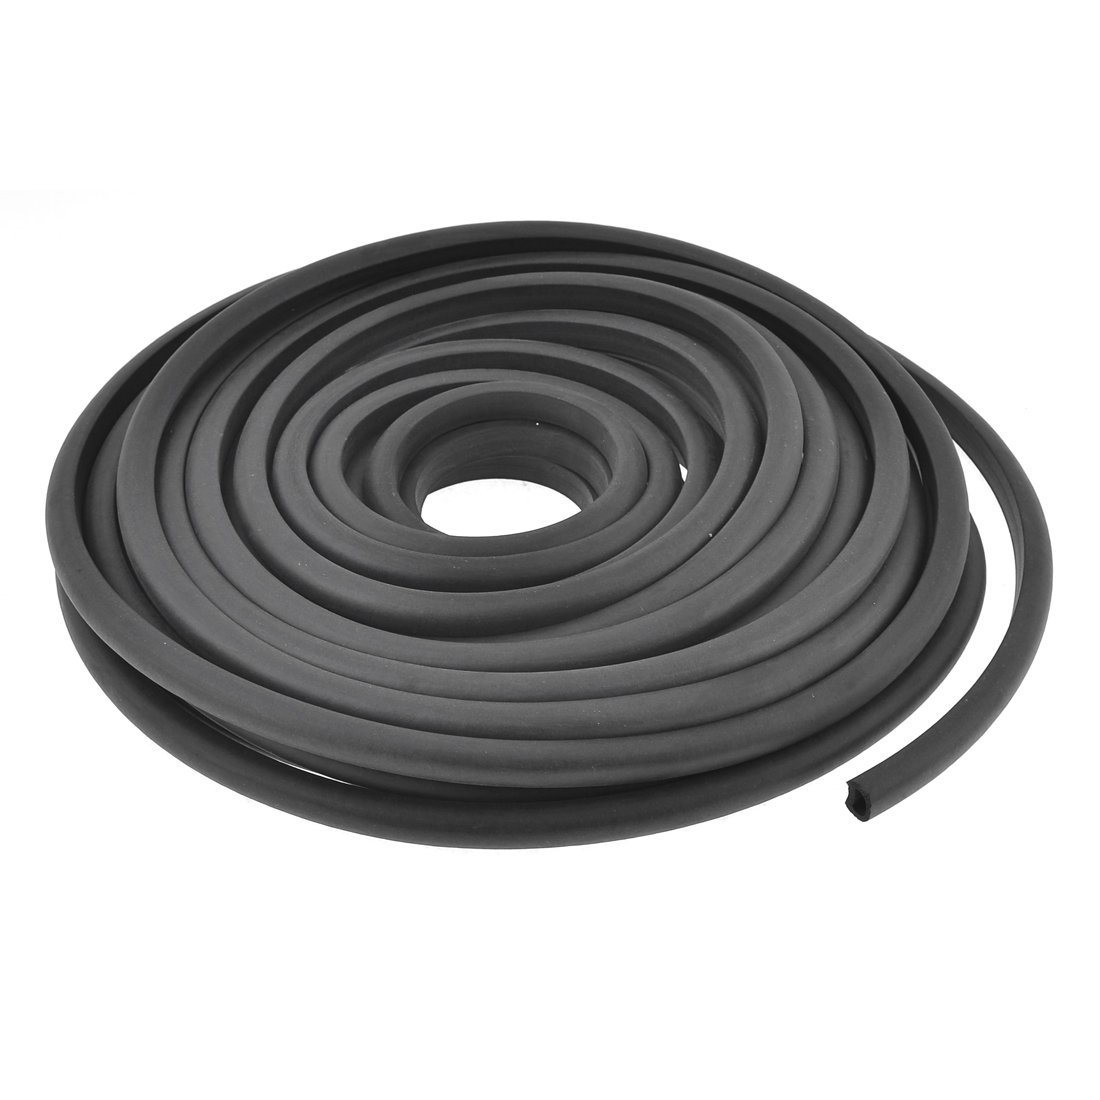 Black Rubber D Style Car Auto Door Window Noise Sealing Strip 15 Meters Long Size L